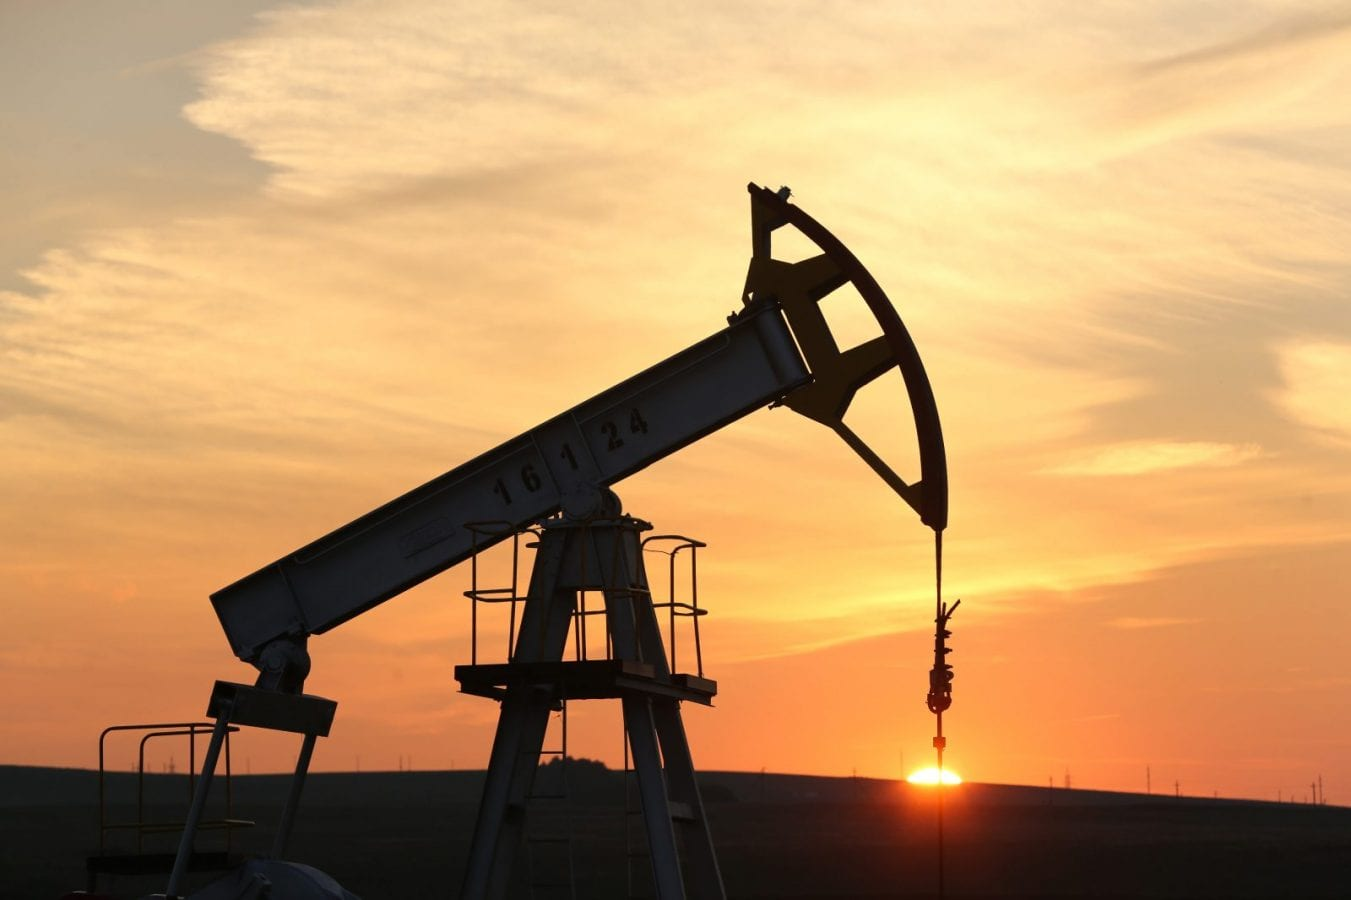 Nigeria Needs Strong Legislation To Rid Oil Industry Of Fraud- Experts